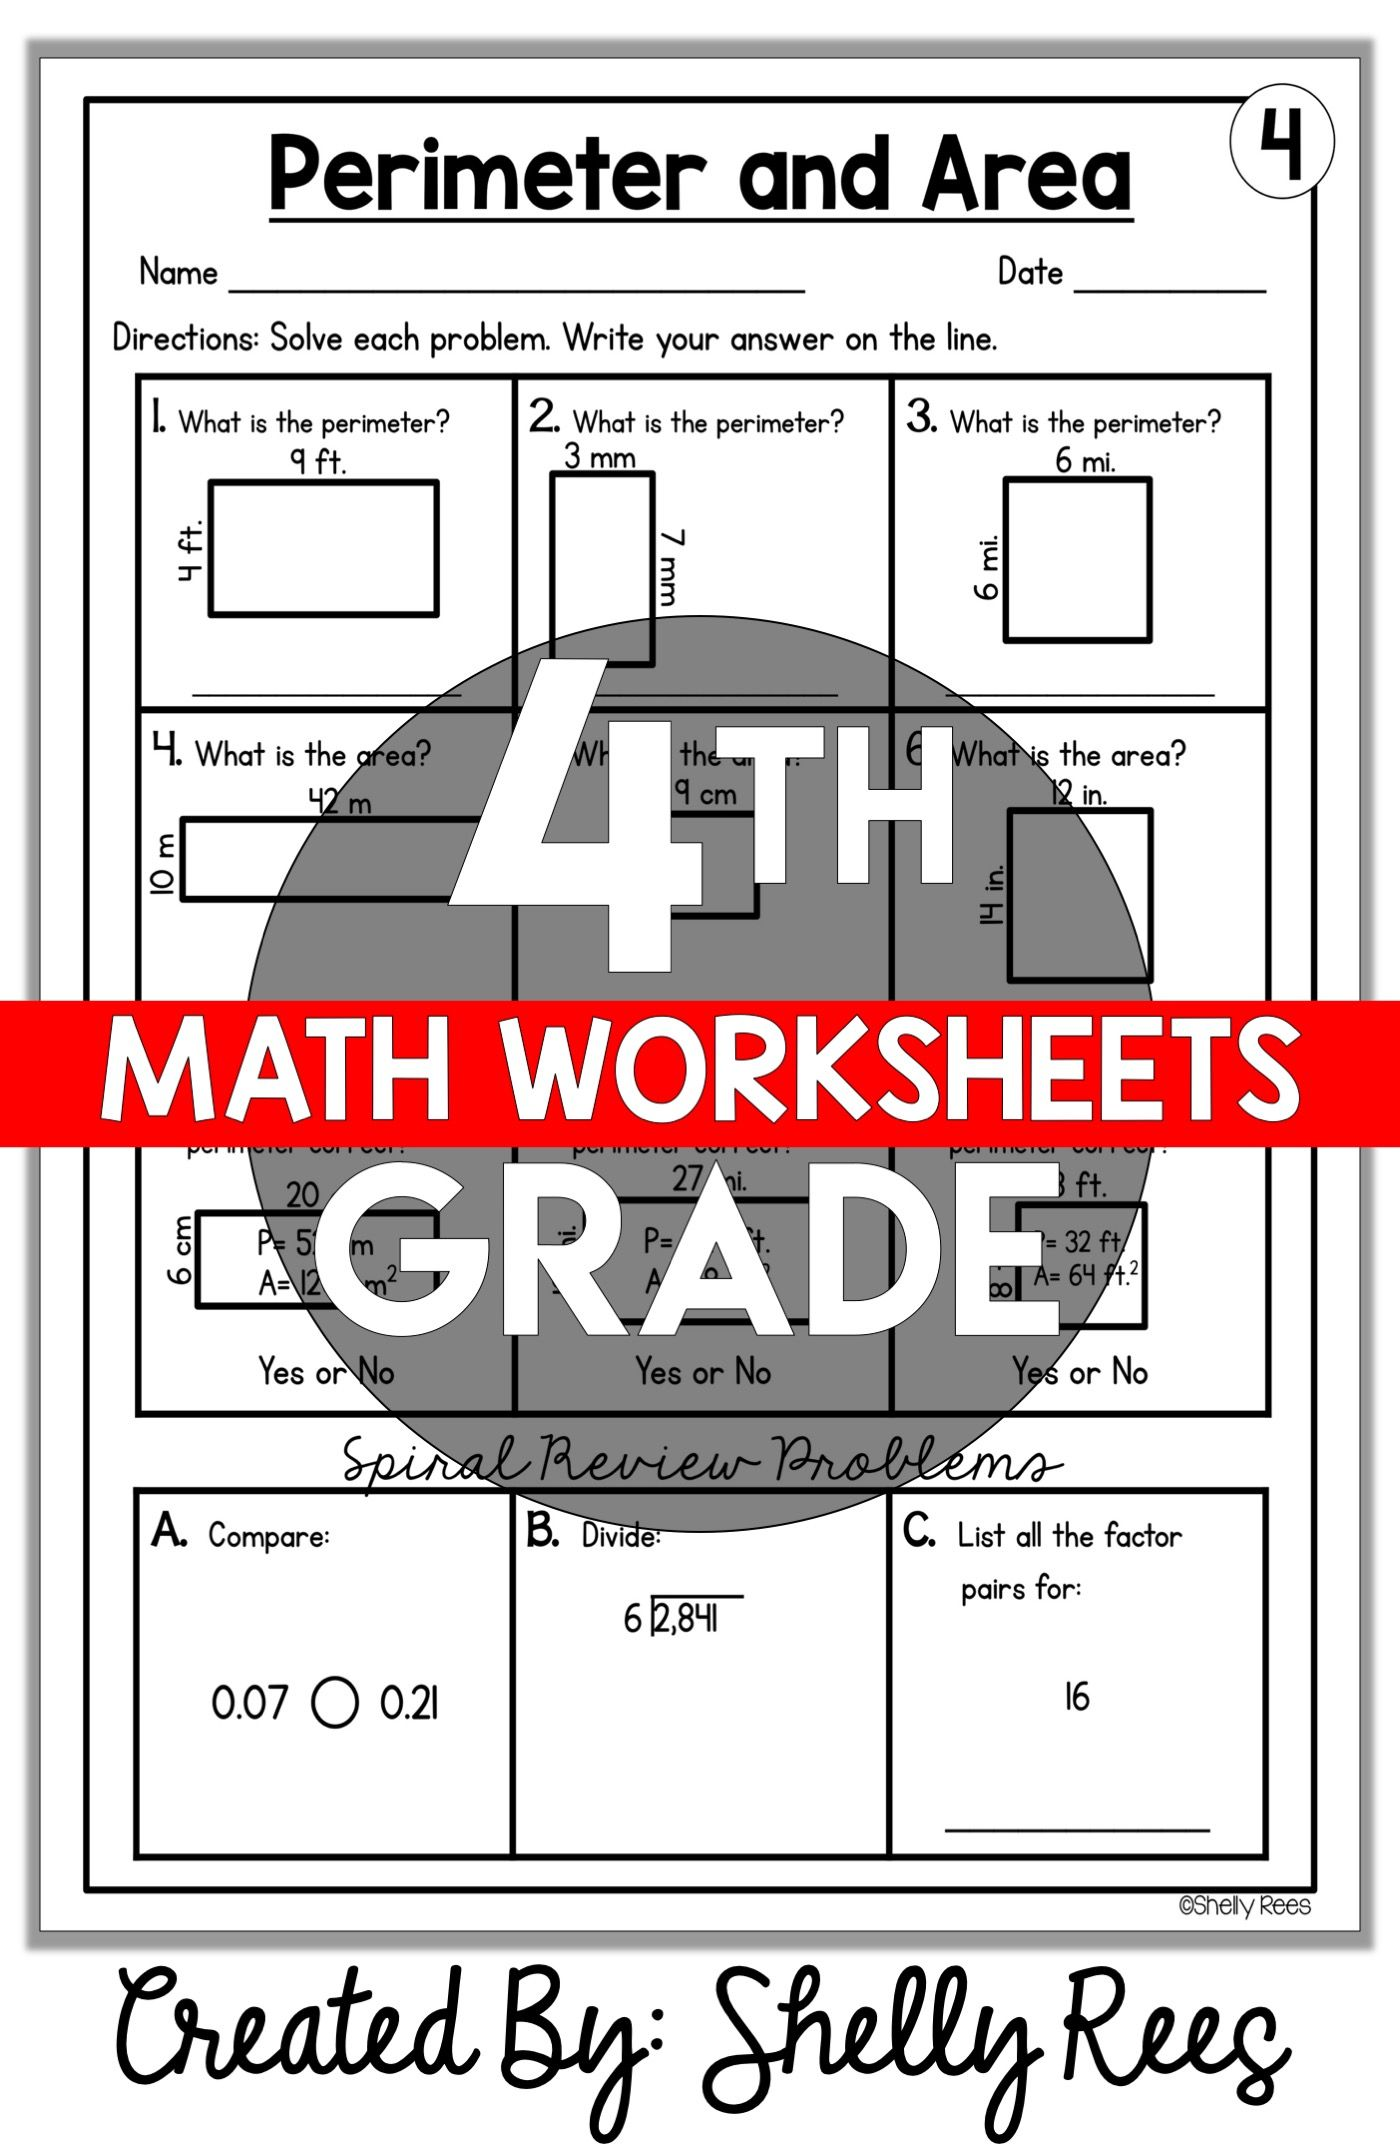 4th Grade Math Worksheets Free and Printable - Appletastic Learning   Math  worksheets [ 2148 x 1400 Pixel ]